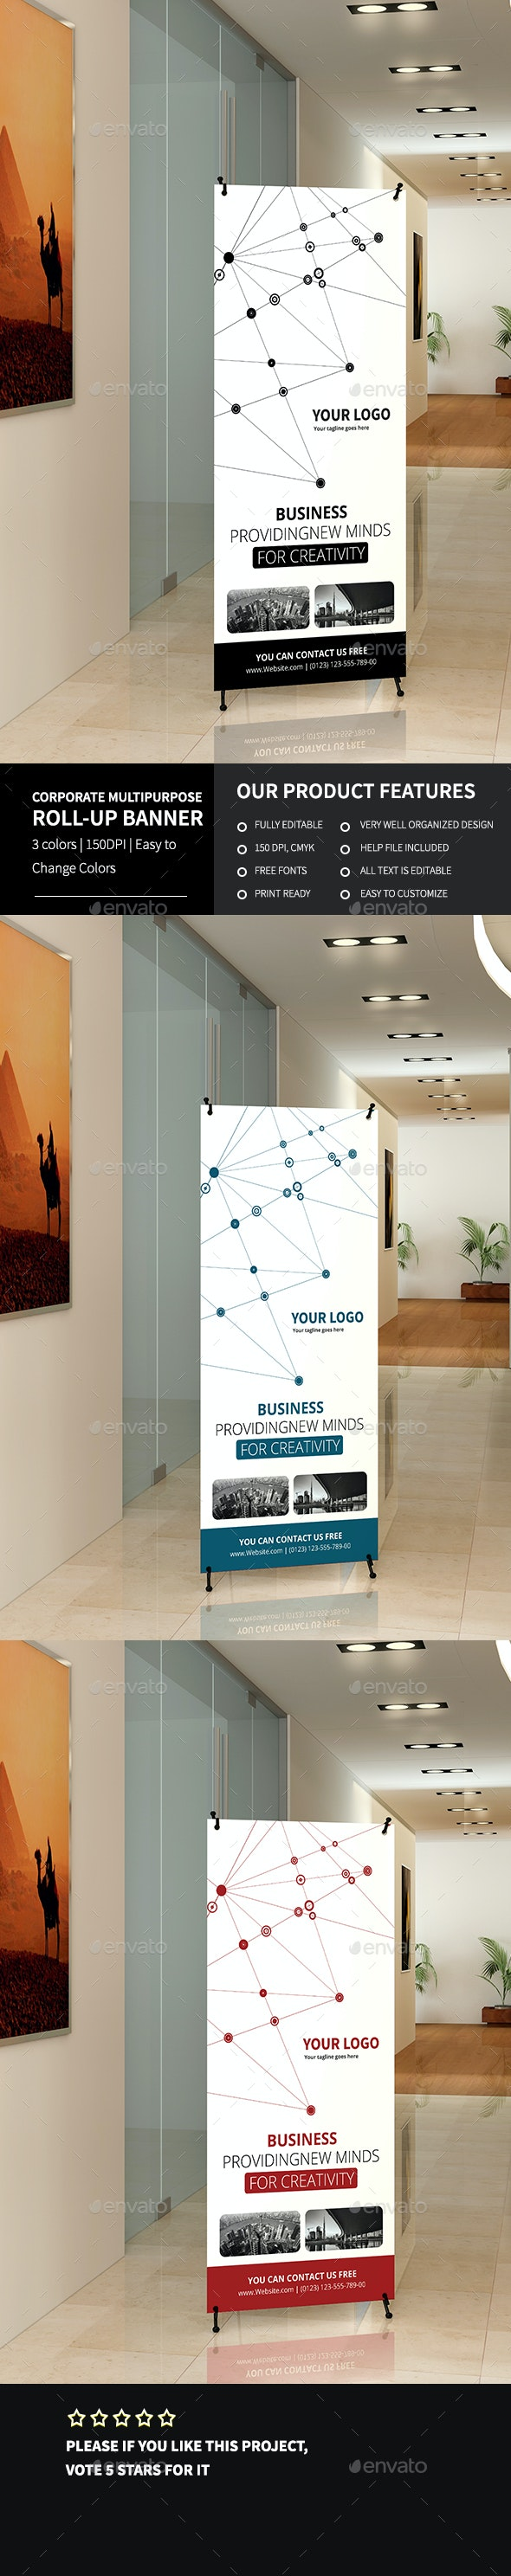 Corporate Multipurpose Roll-up Banner 2 - Signage Print Templates